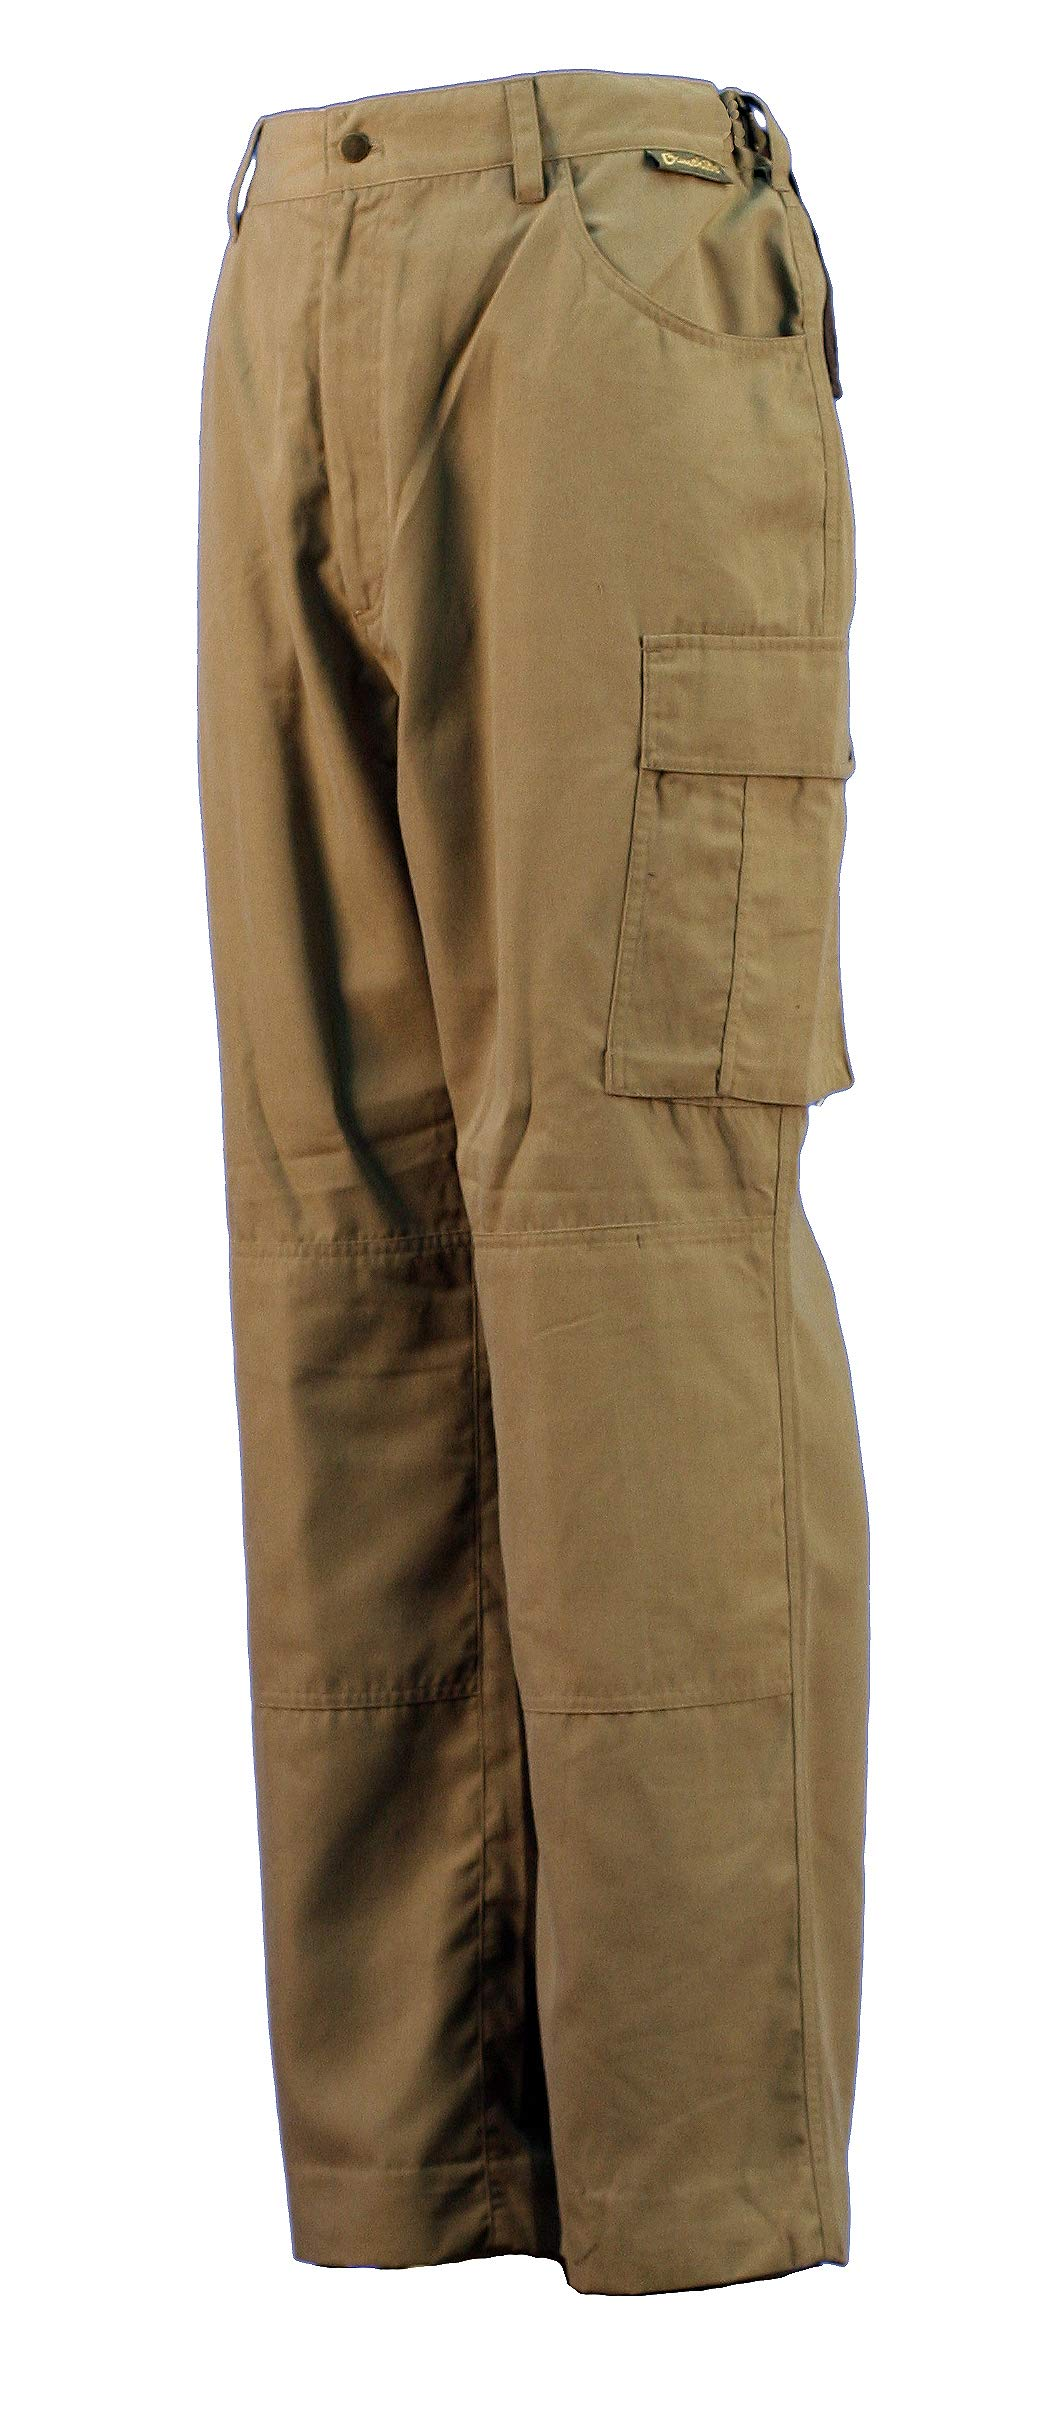 Gamehide ElimiTick Five Pocket Pant